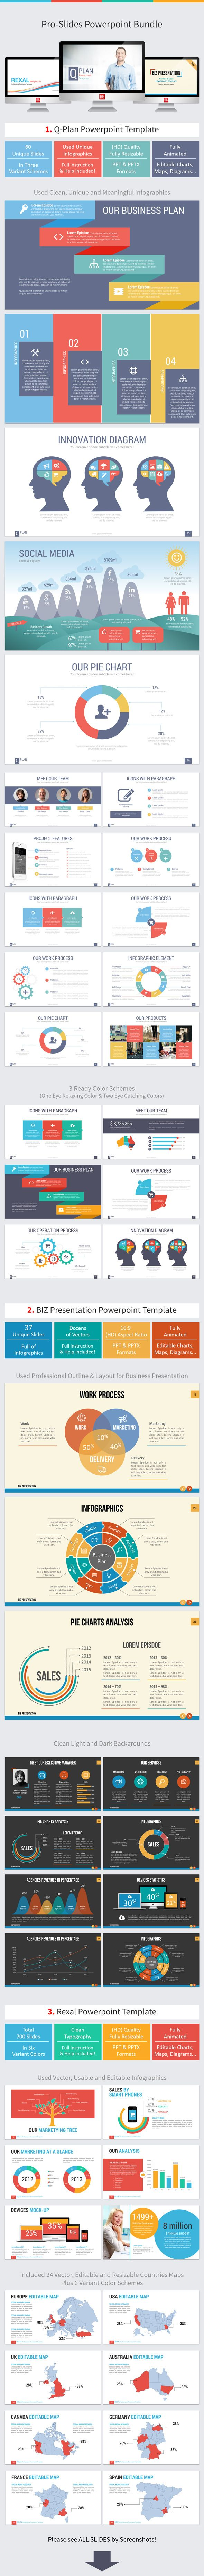 Pro slides powerpoint bundle powerpoint templates template pro slides powerpoint bundle powerpoint templates main live preview powerpoint powerpointtemplate alramifo Gallery